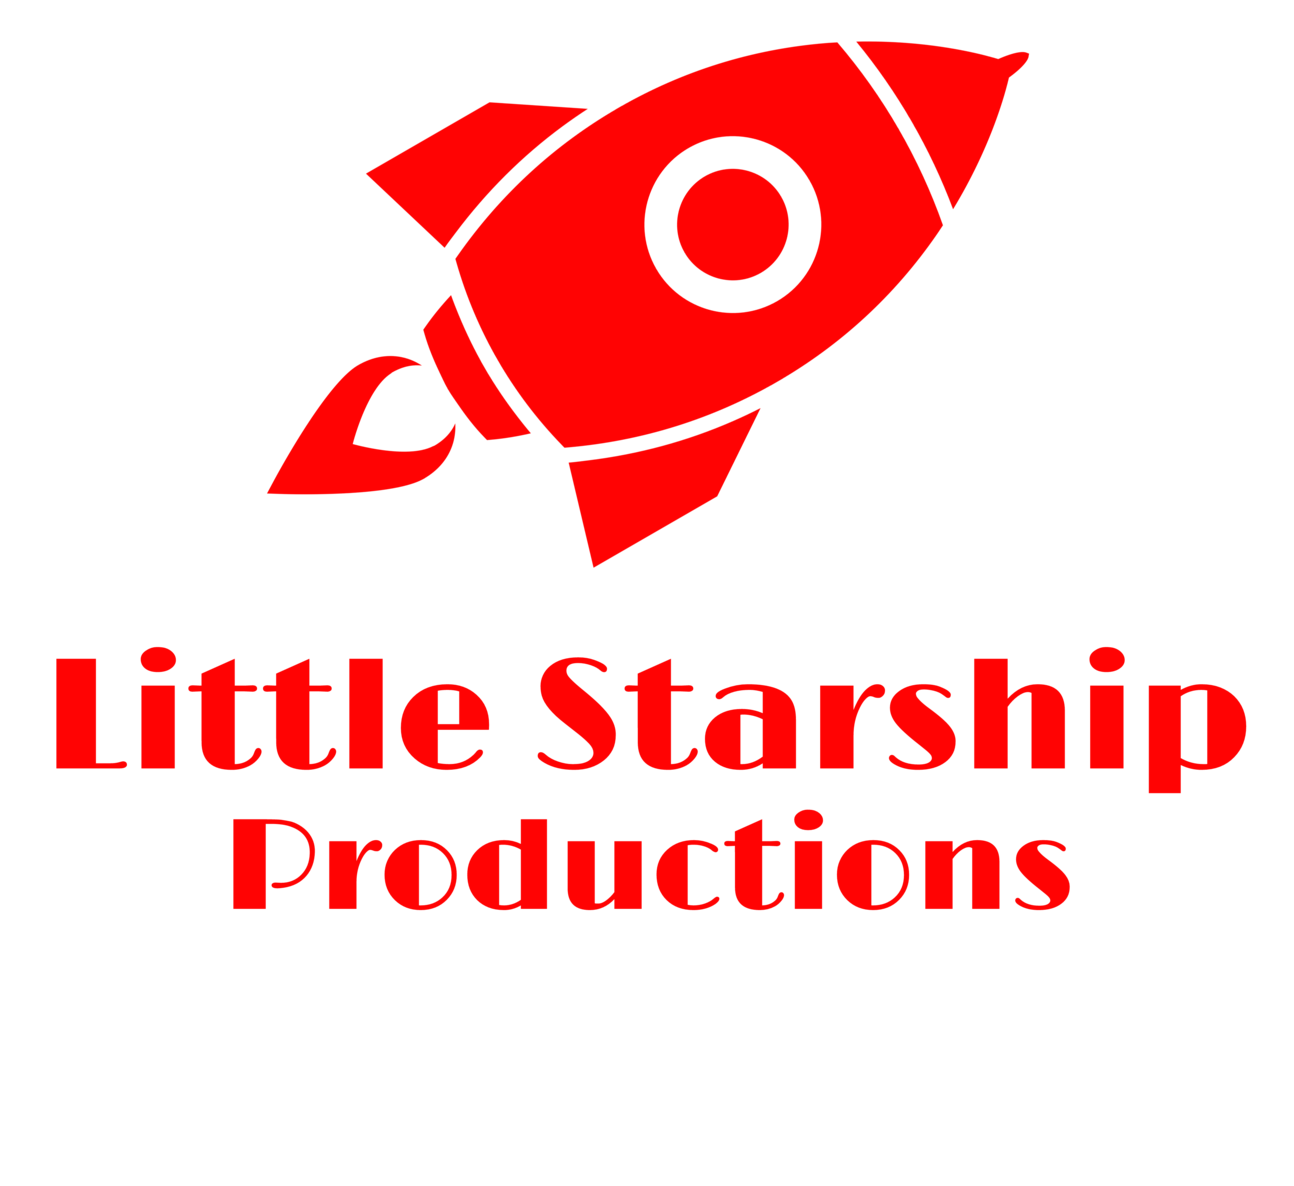 Little Starship Productions